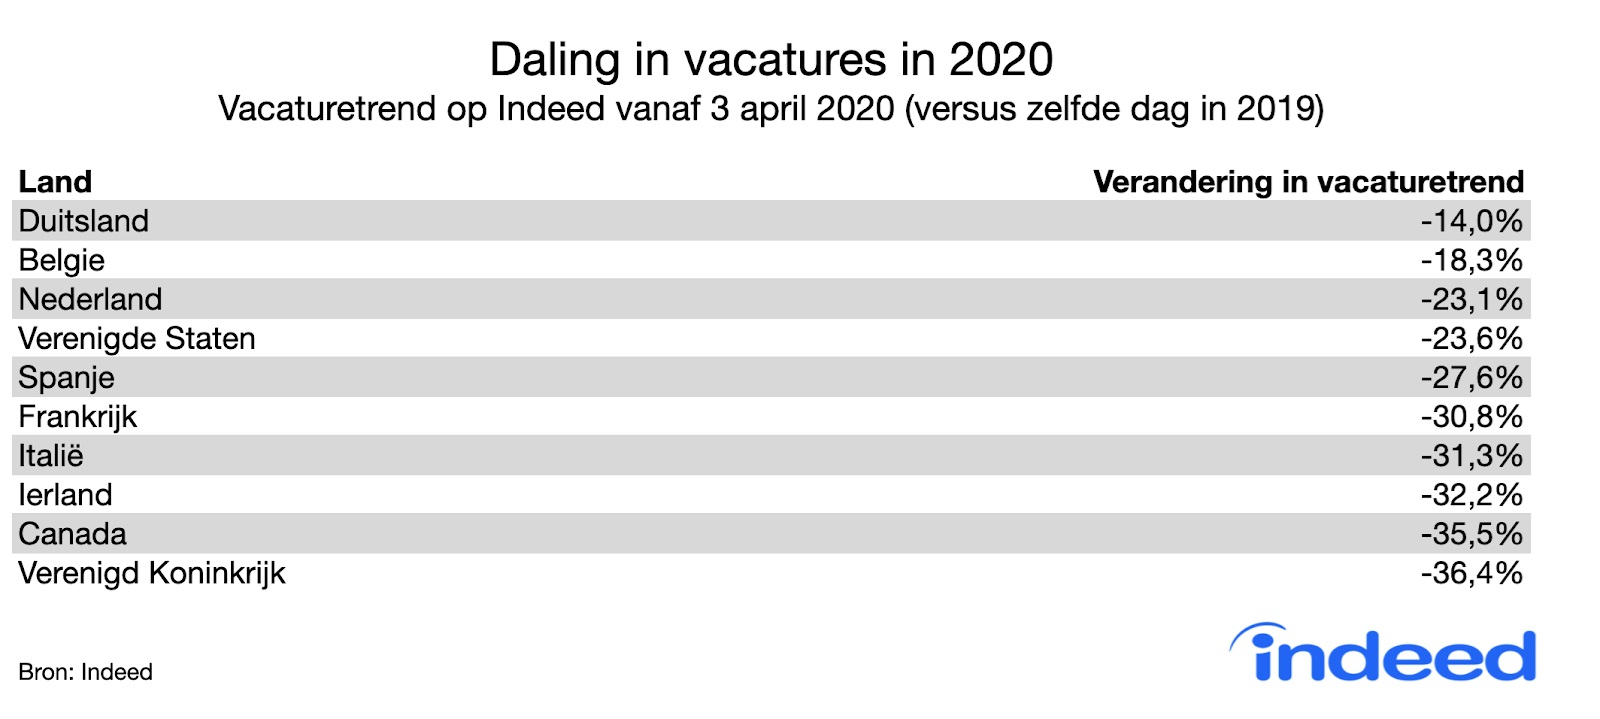 Daling-in-vacatures-in-2020-vanaf-3-april-2020